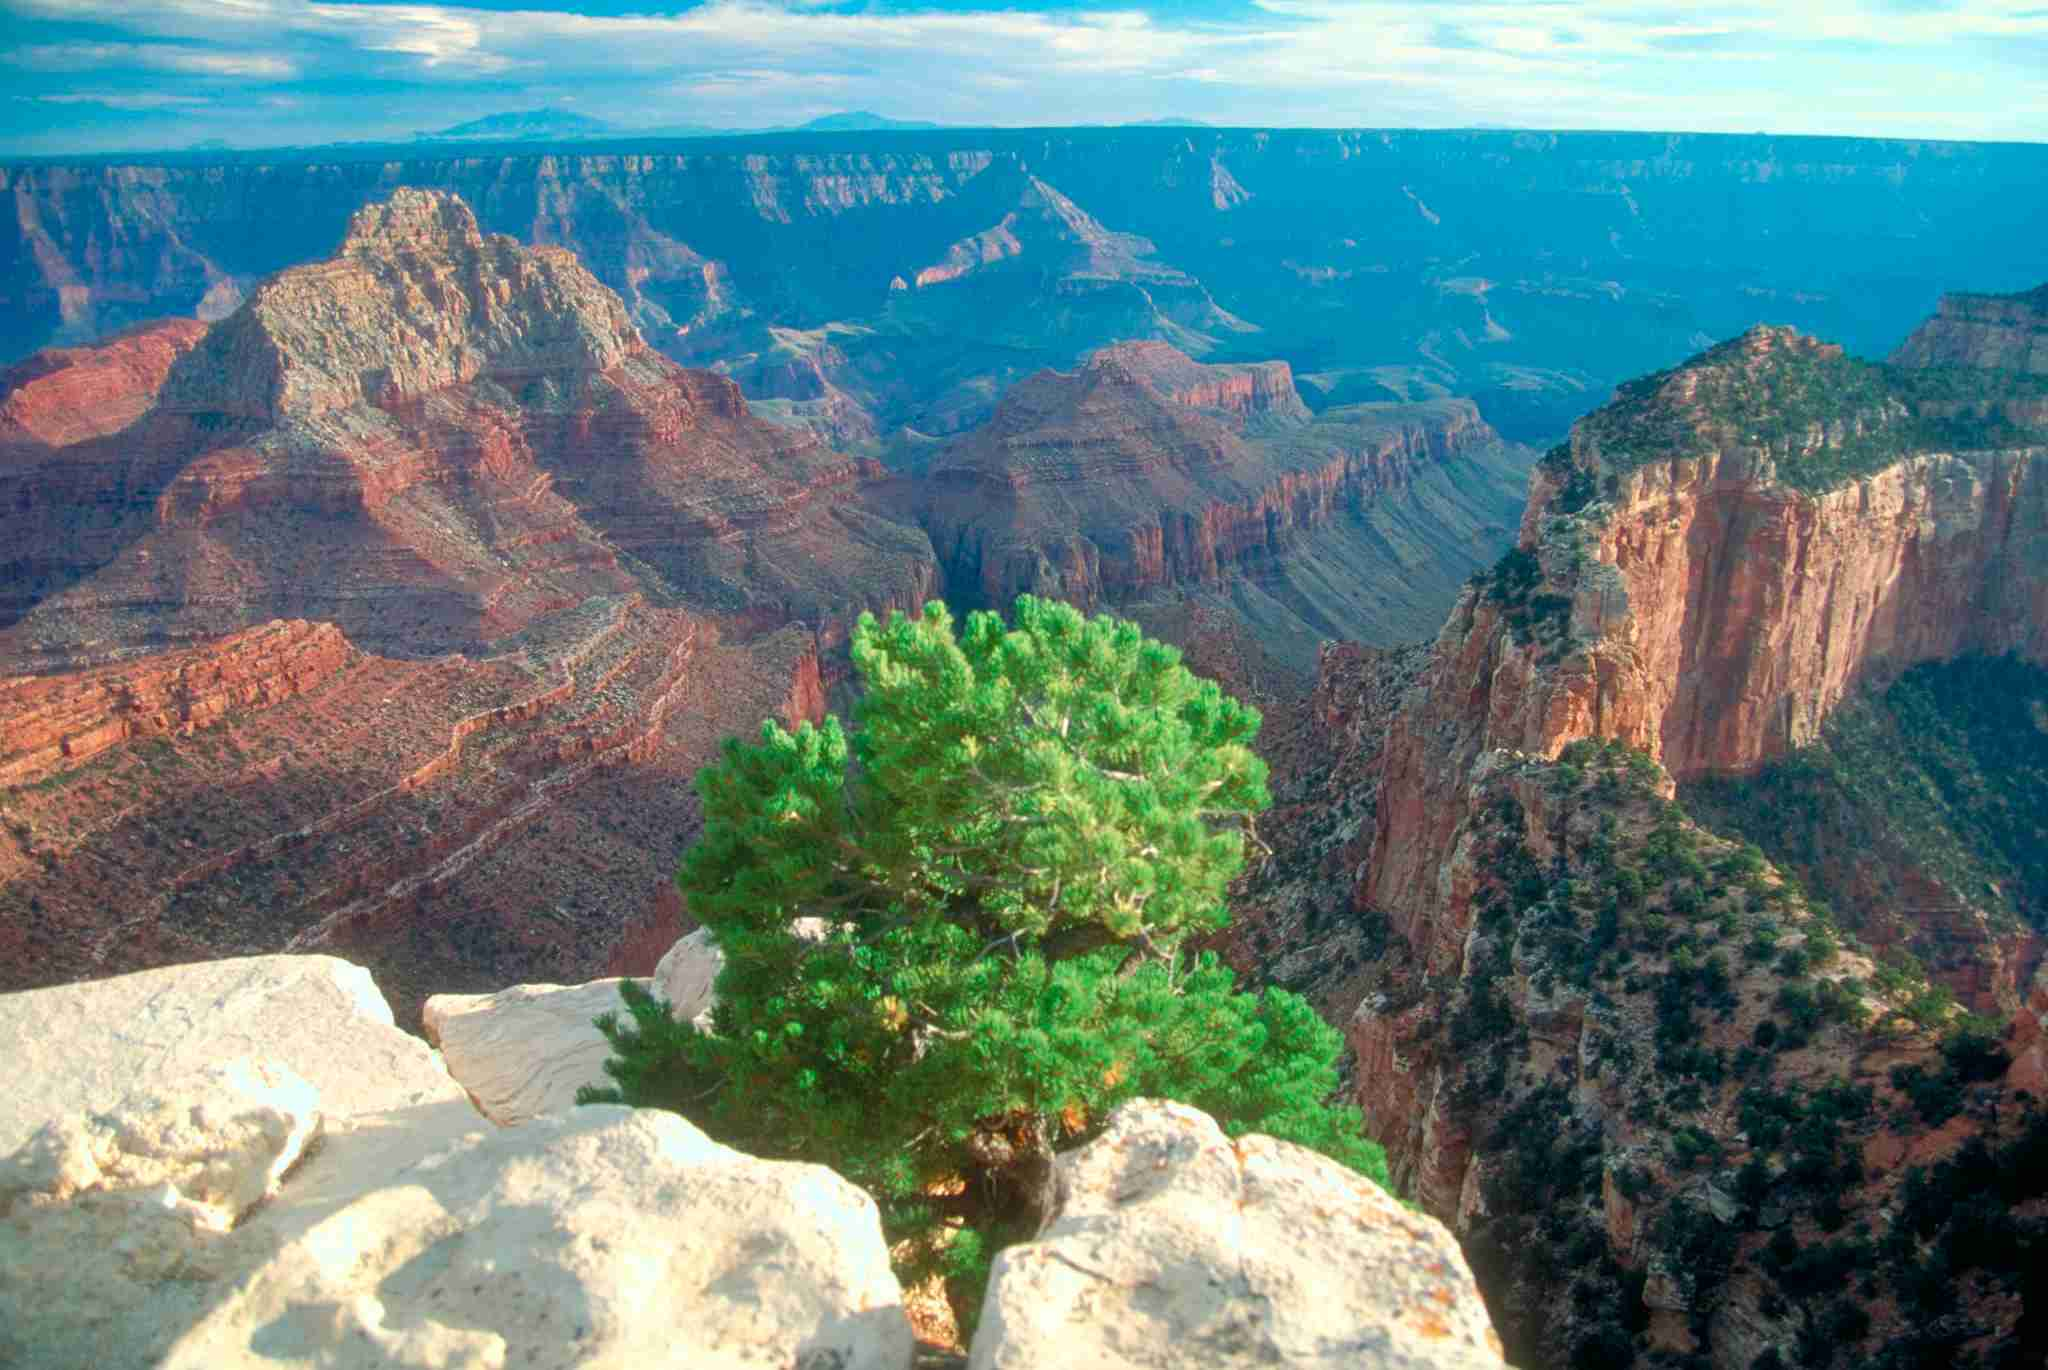 View from Pipe Creek Vista on the south rim of the Grand Canyon National Park, Arizona, USA. (Photo by: MyLoupe/Universal Images Group via Getty Images)